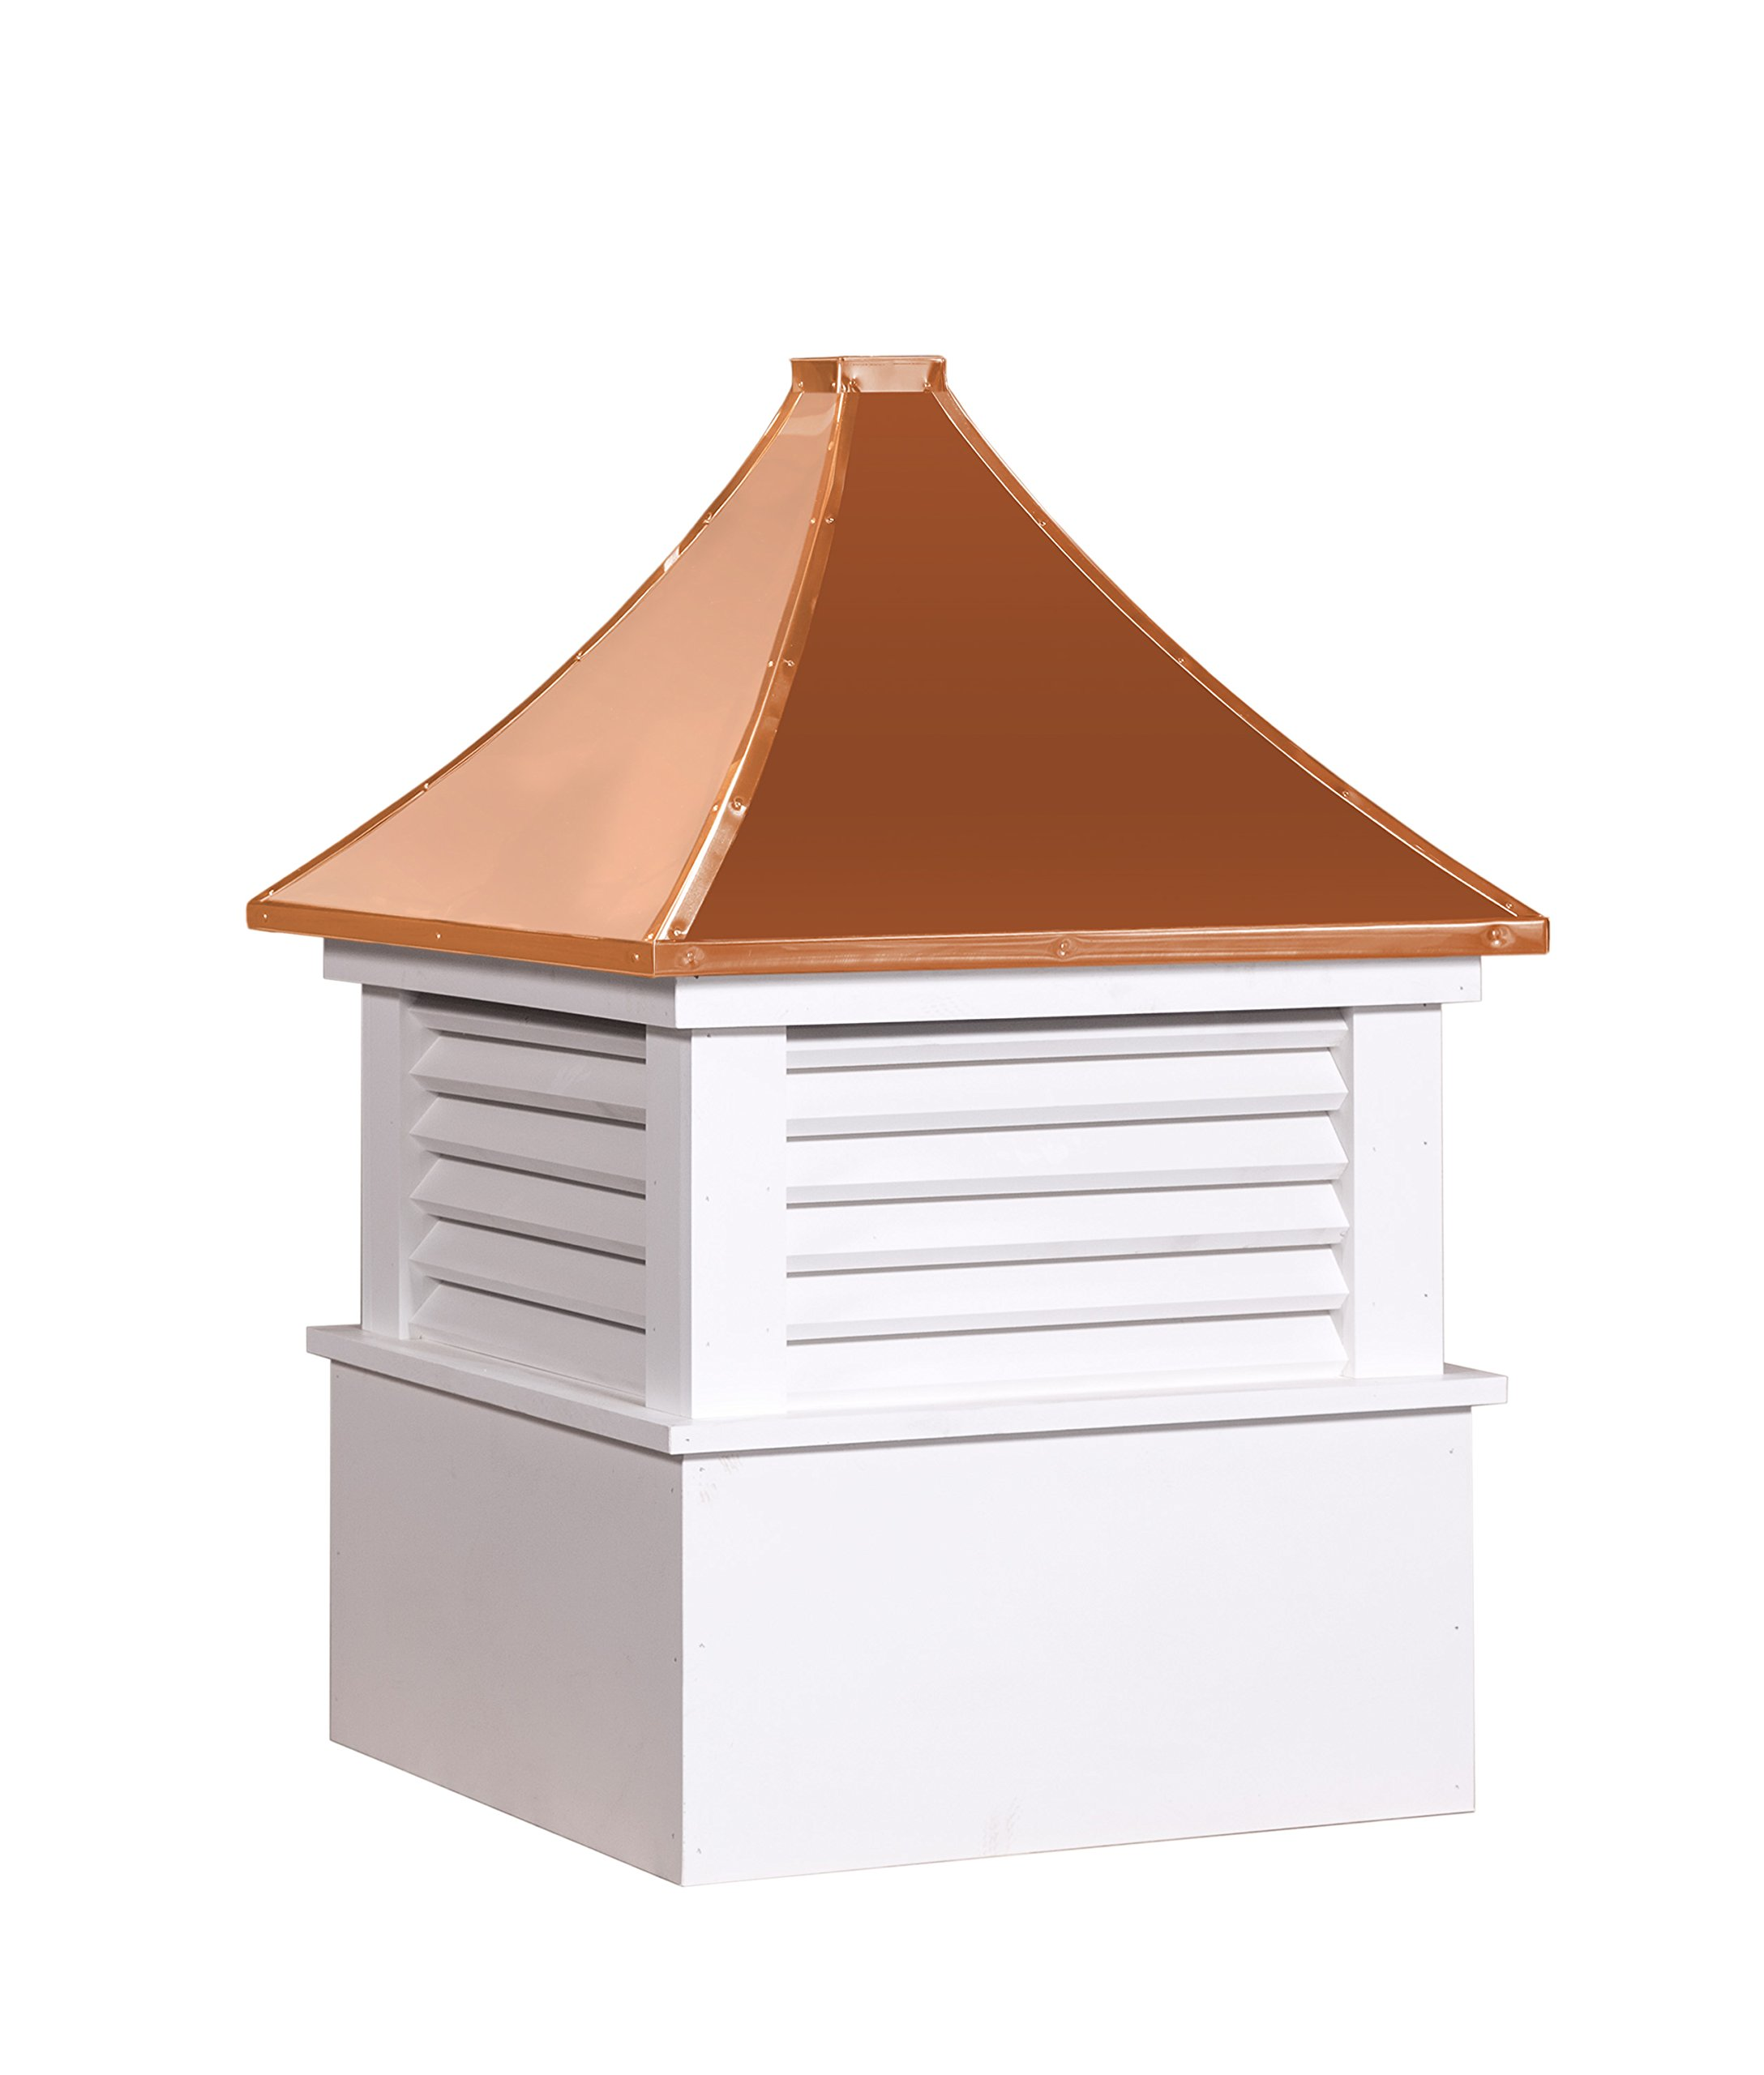 East Coast Weathervanes and Cupolas Vinyl Attleboro Cupola (Vinyl, 25 in square x 36 in tall) by East Coast Weathervanes and Cupolas